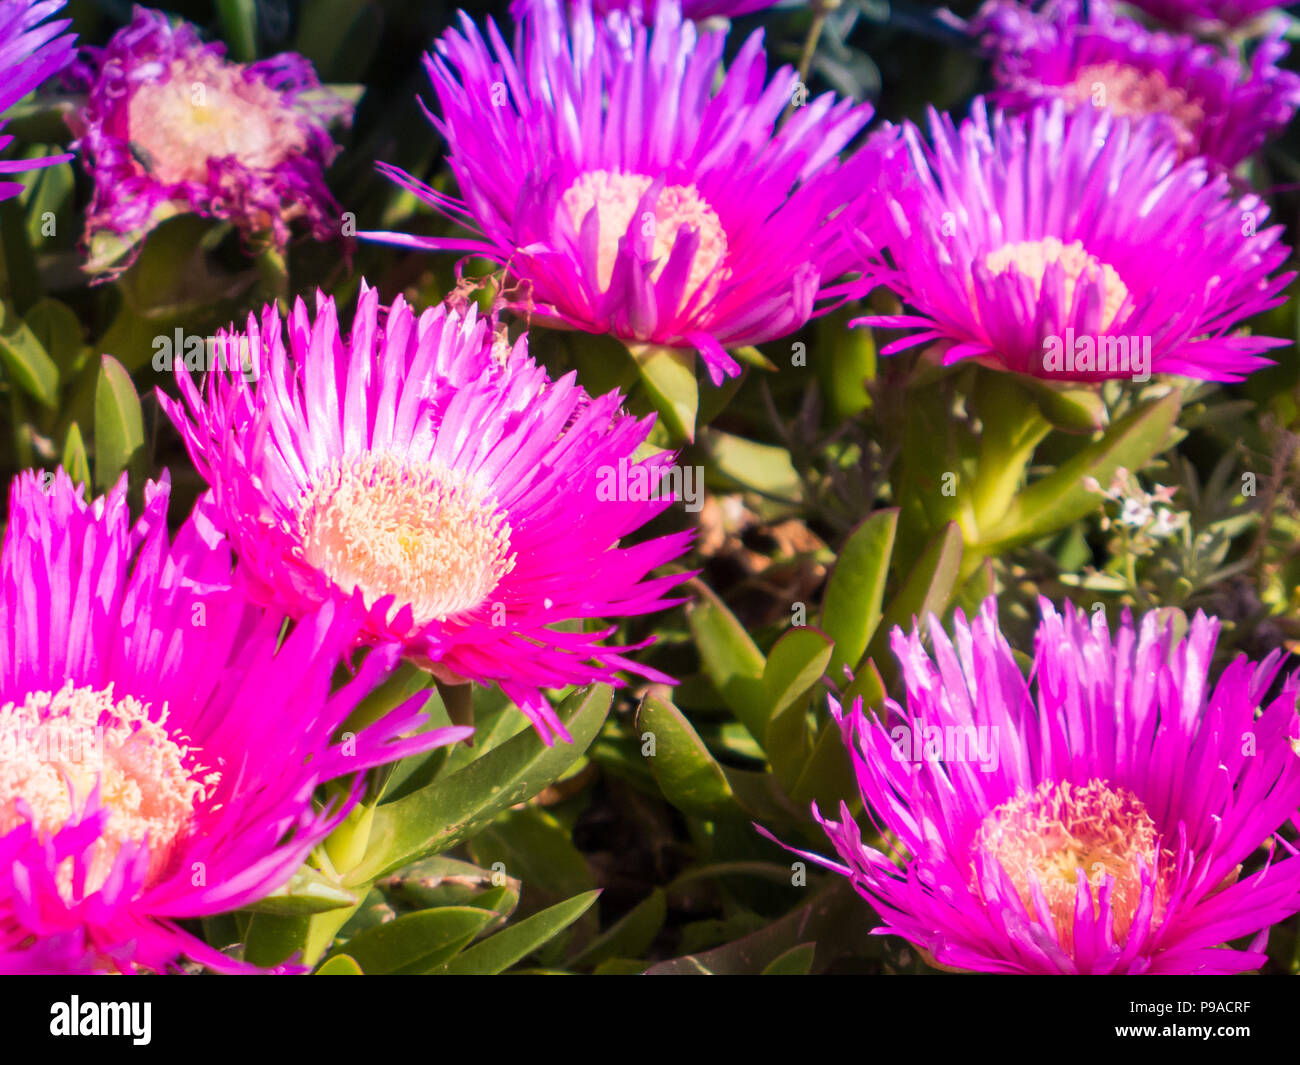 Large daisy like flowers stock photos large daisy like flowers carpobrotus is a genus of ground creeping plants with succulent leaves and large daisy izmirmasajfo